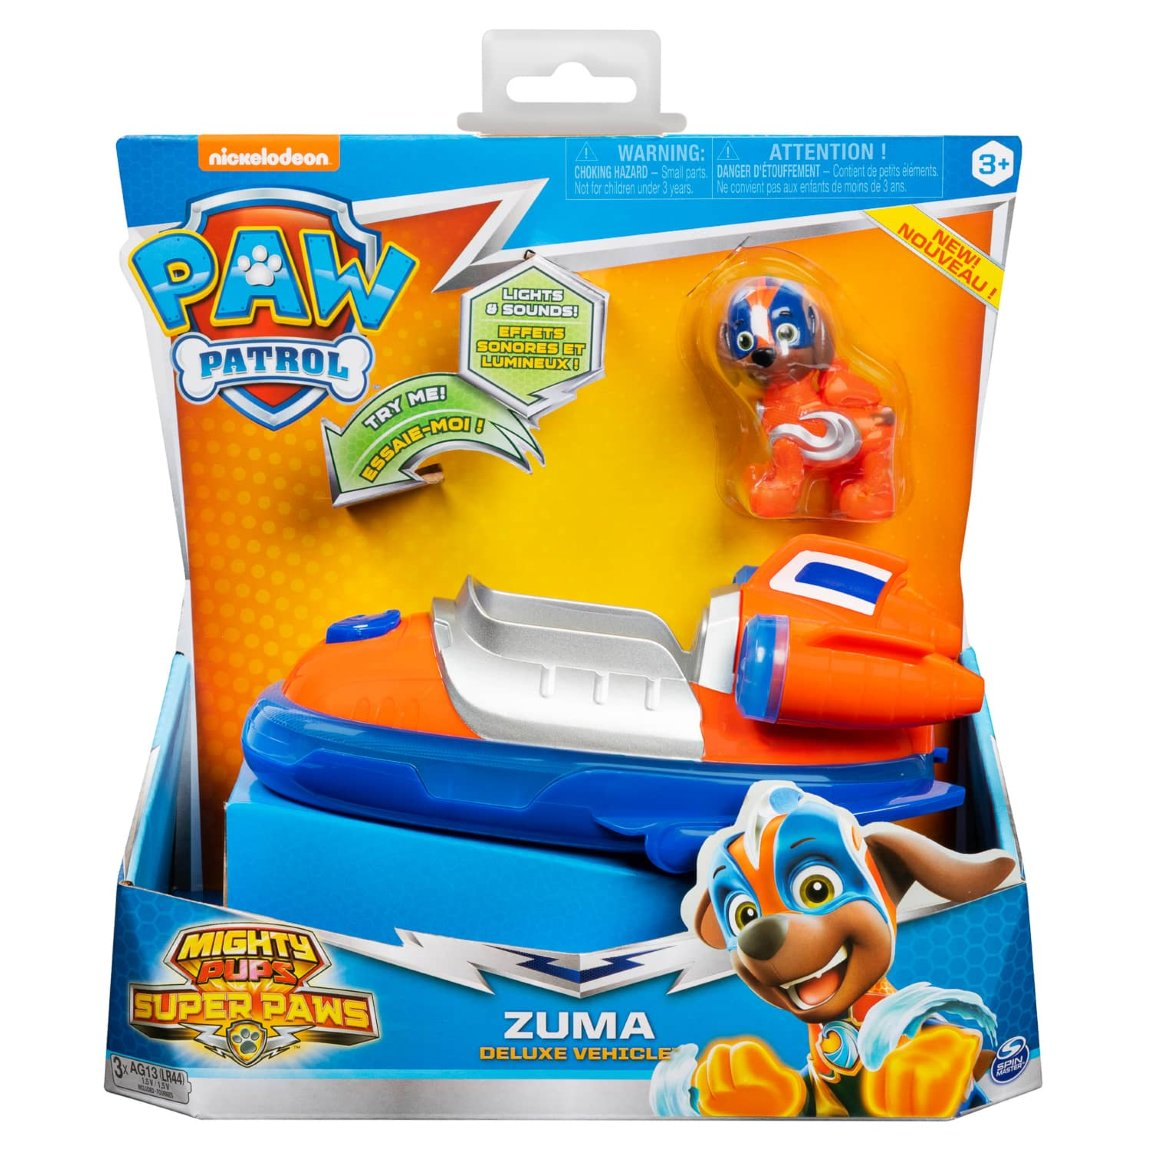 Paw Patrol Lights & Sounds Deluxe Vehicle - Zuma